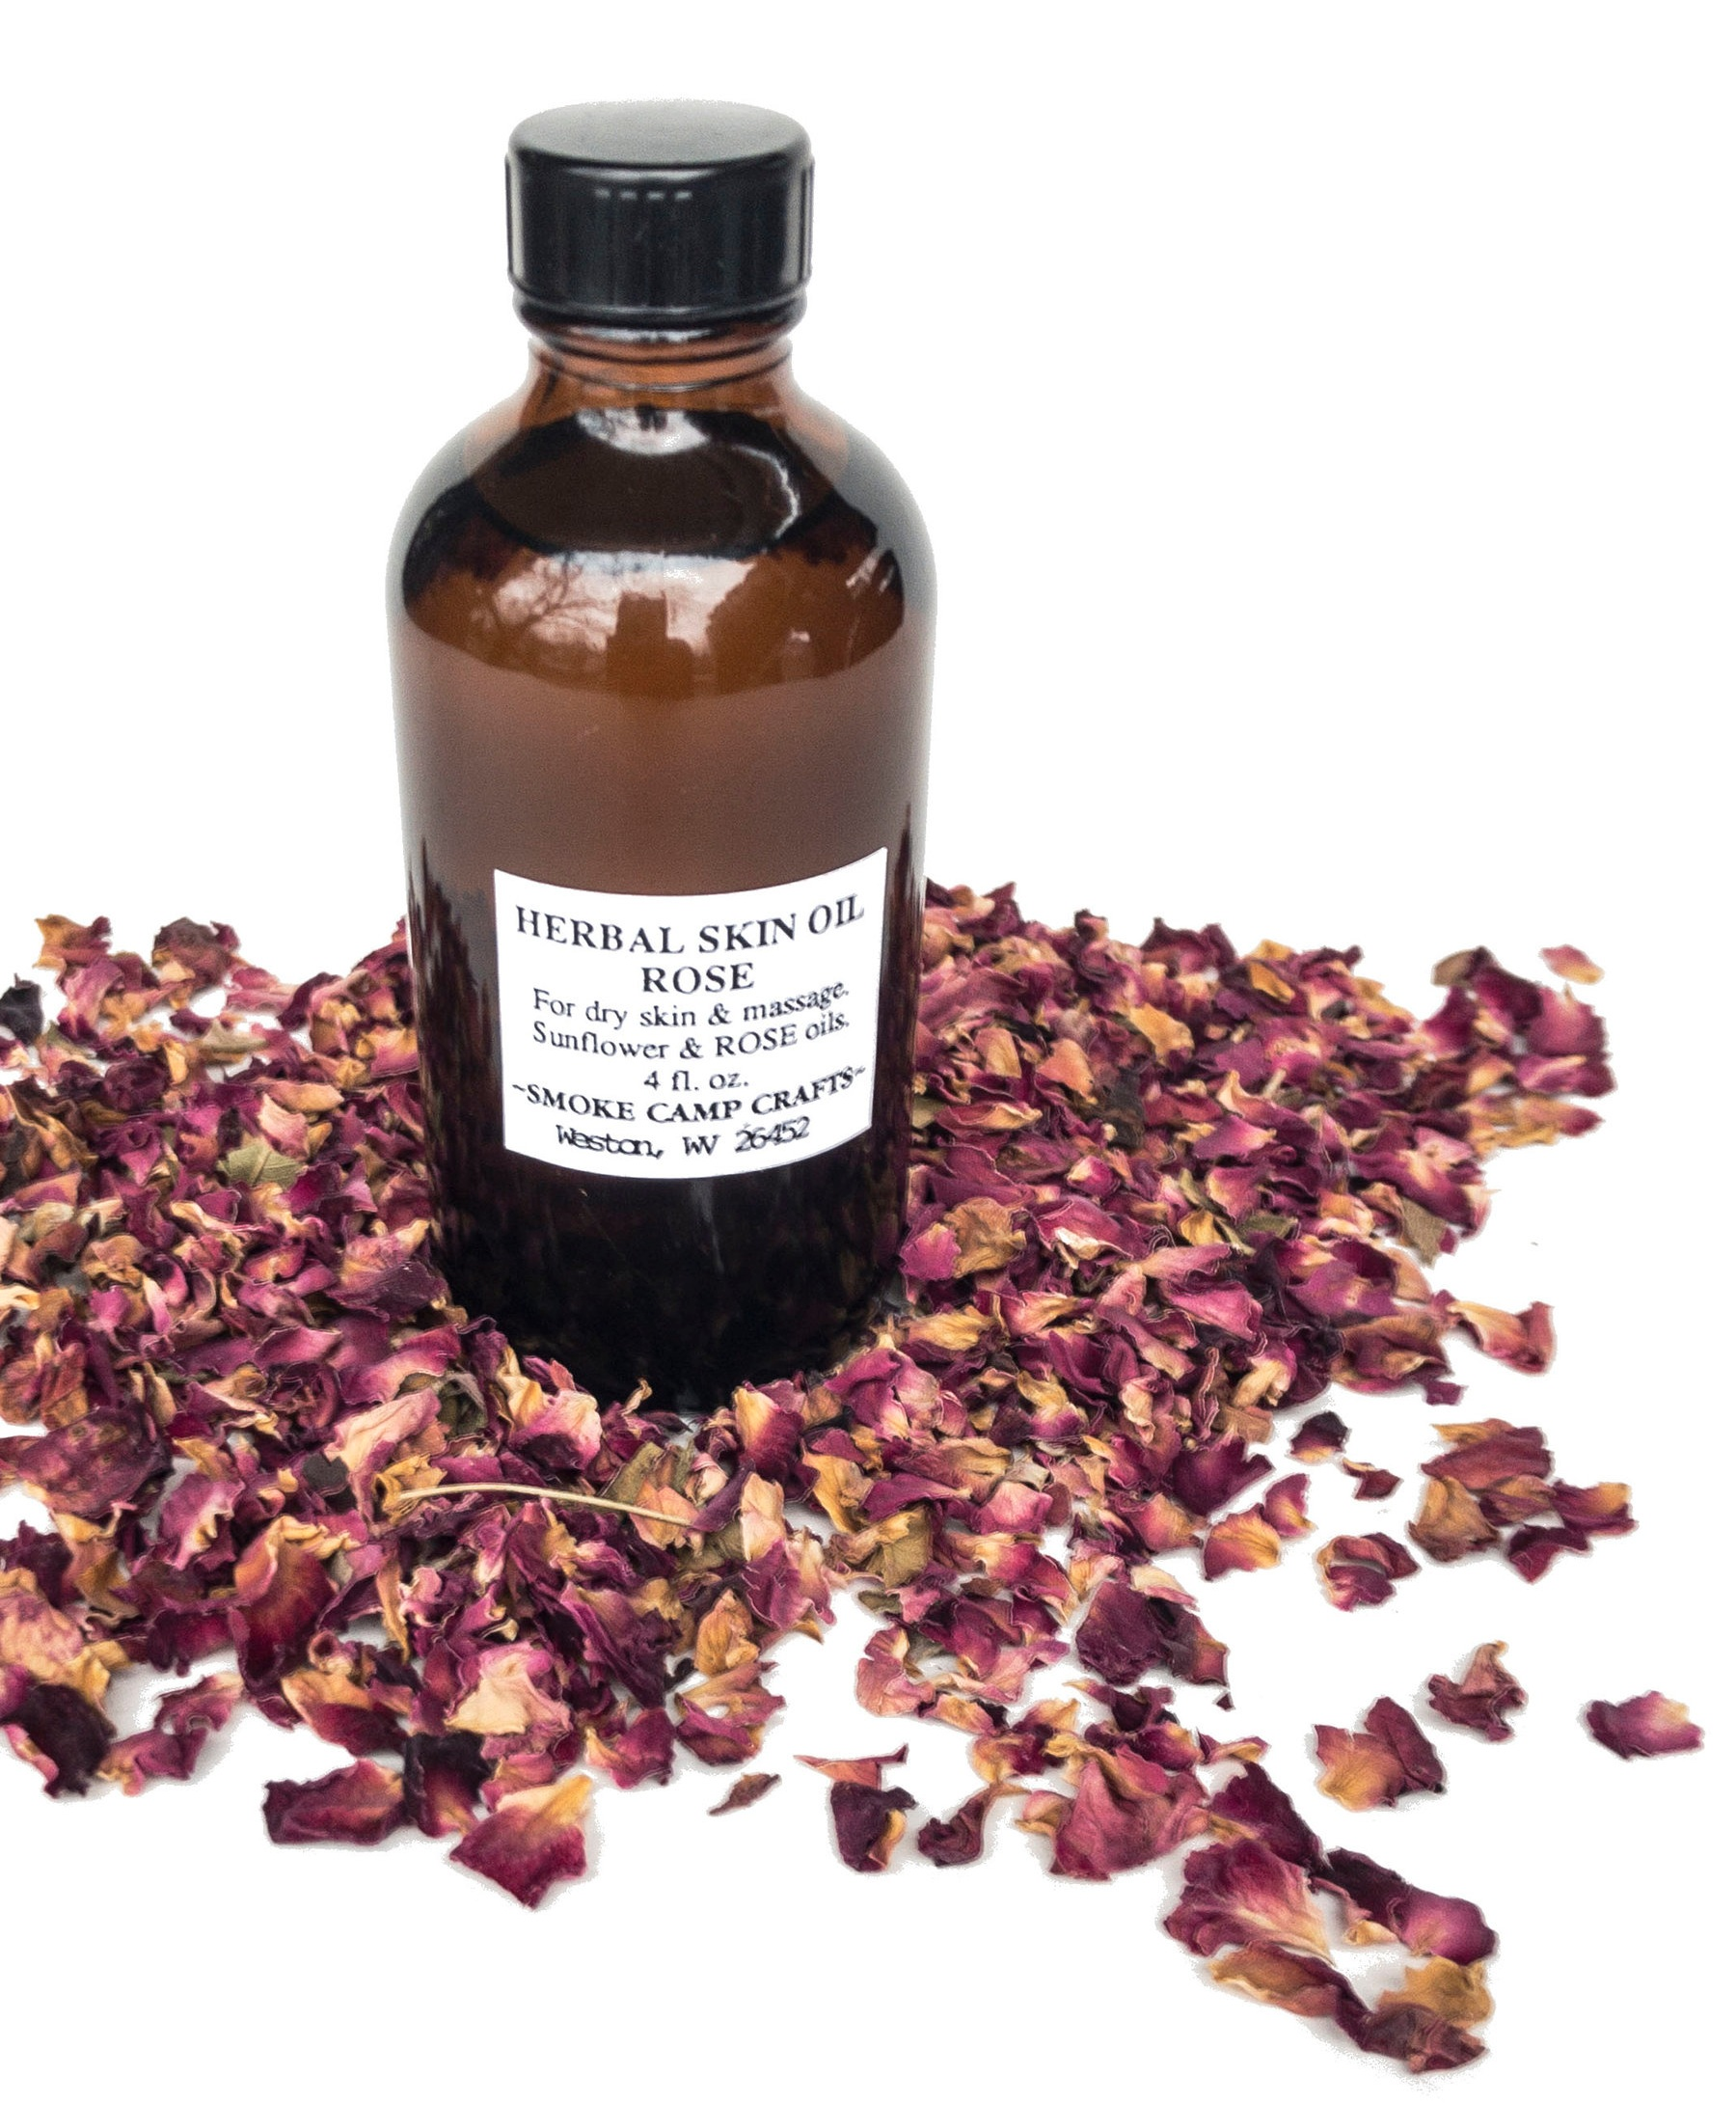 BODY   Shop our selection of herbal skin oils.